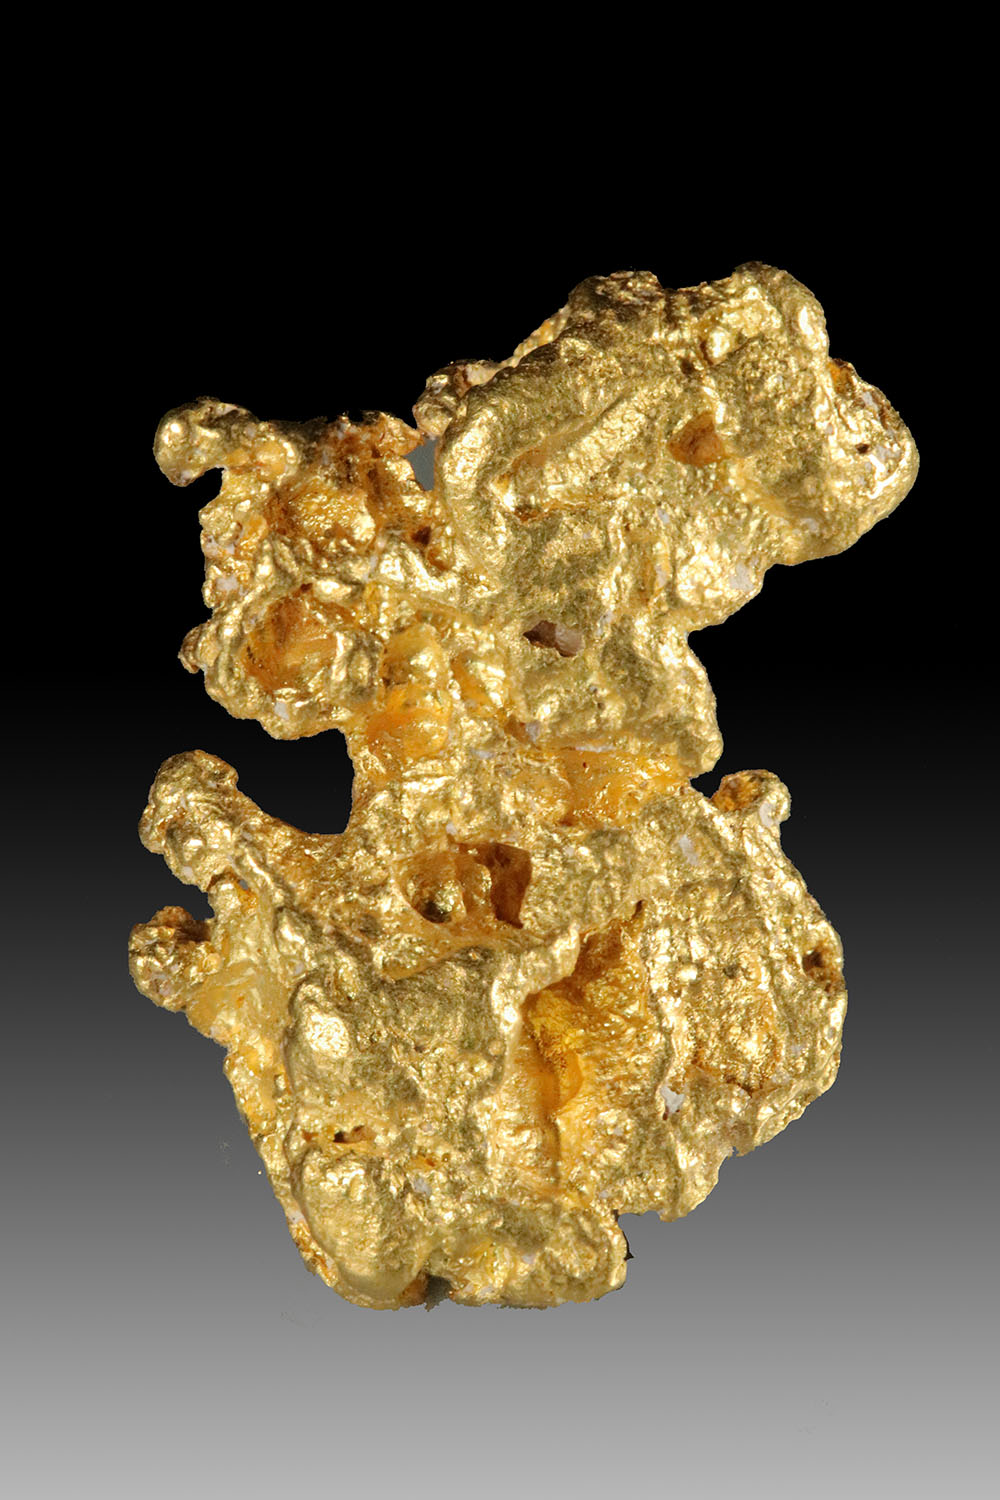 Stunning Clarity and Brilliant Natural Gold Nugget